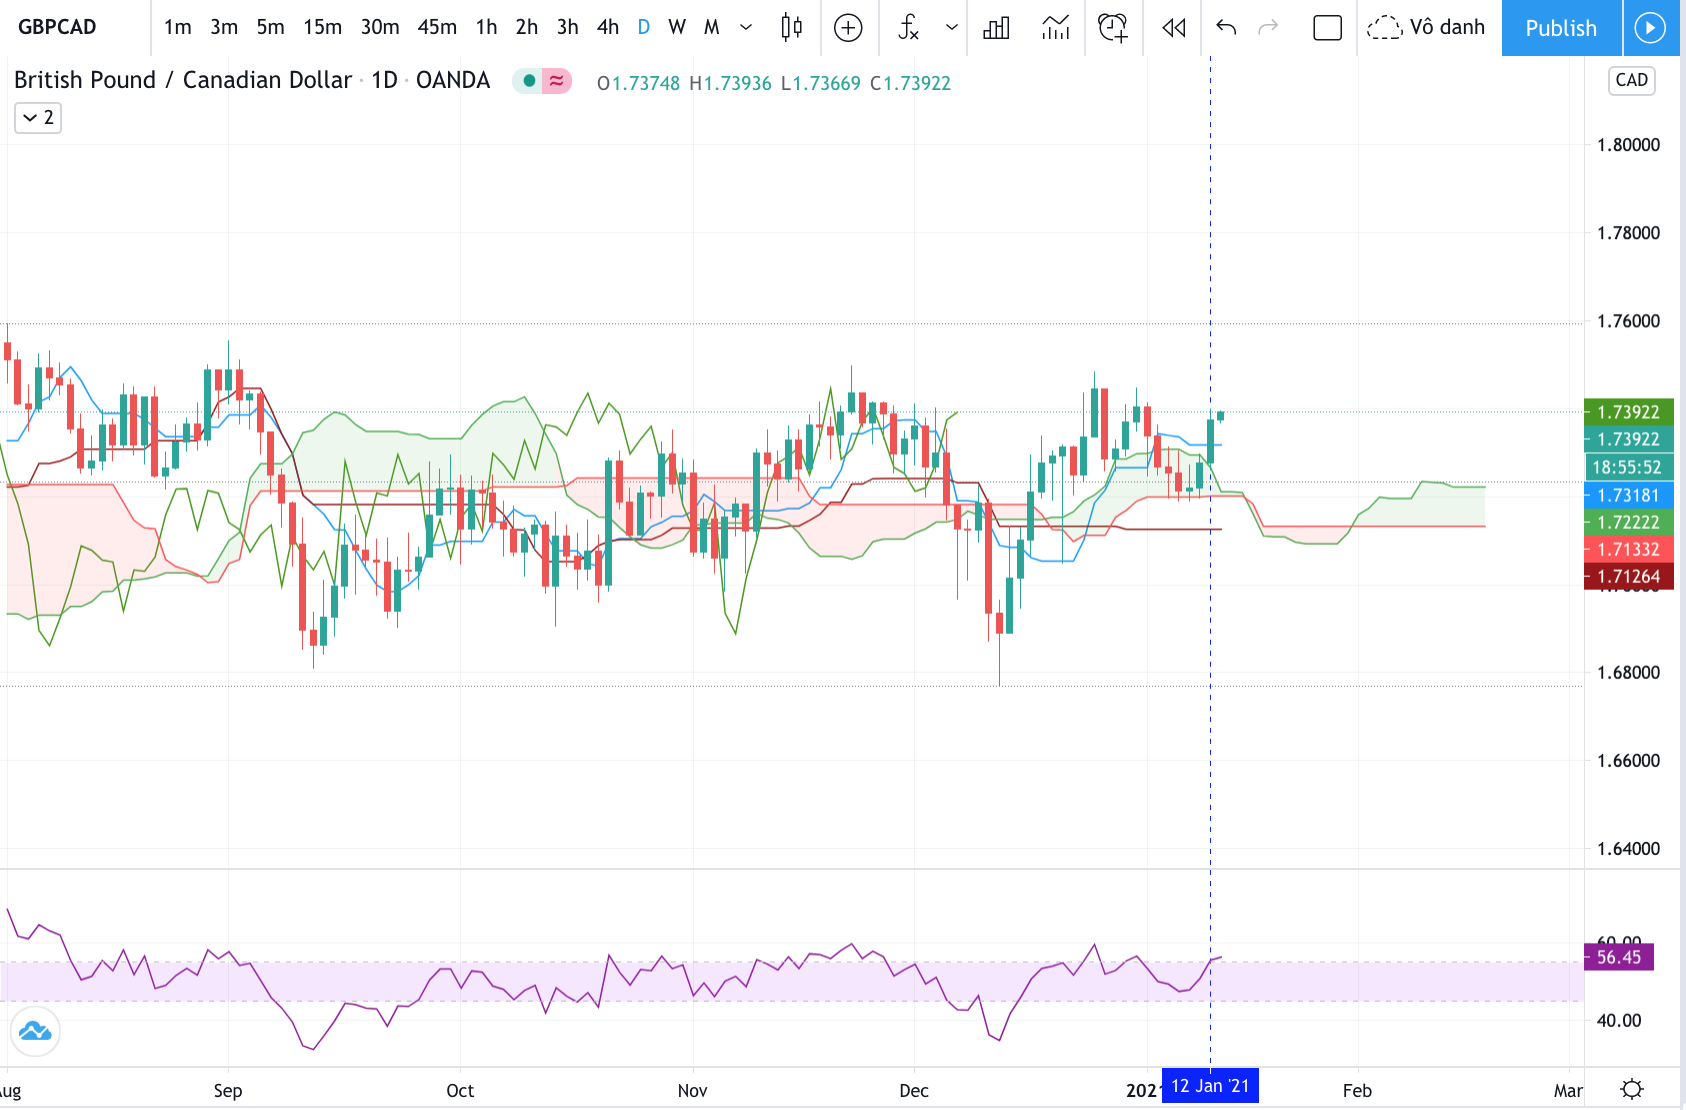 Technical analysis of GBPCAD Time Frame: 1 Day